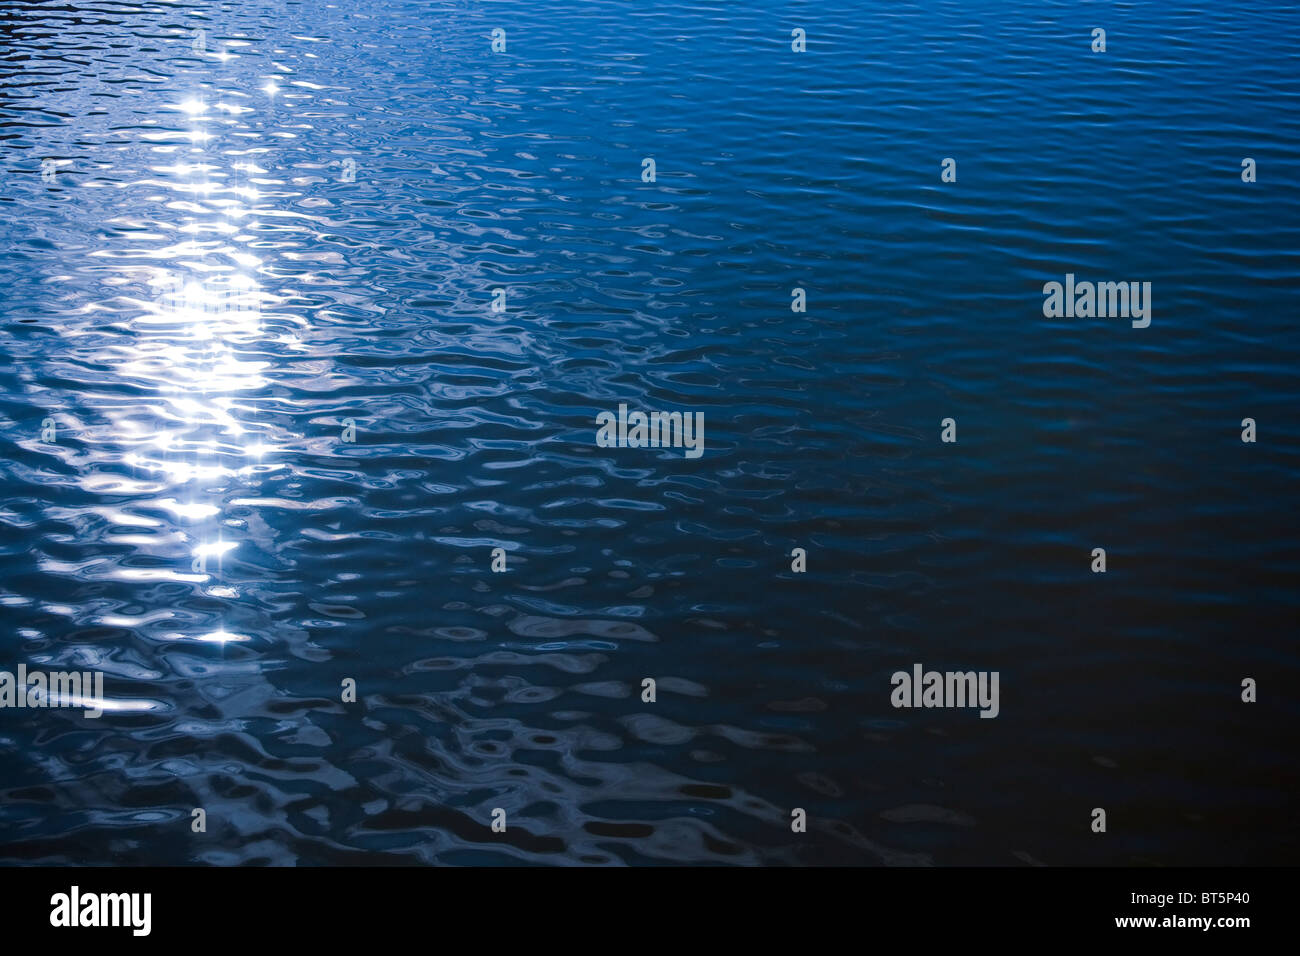 Sunlight reflection in rippled water surface . natural image - Stock Image